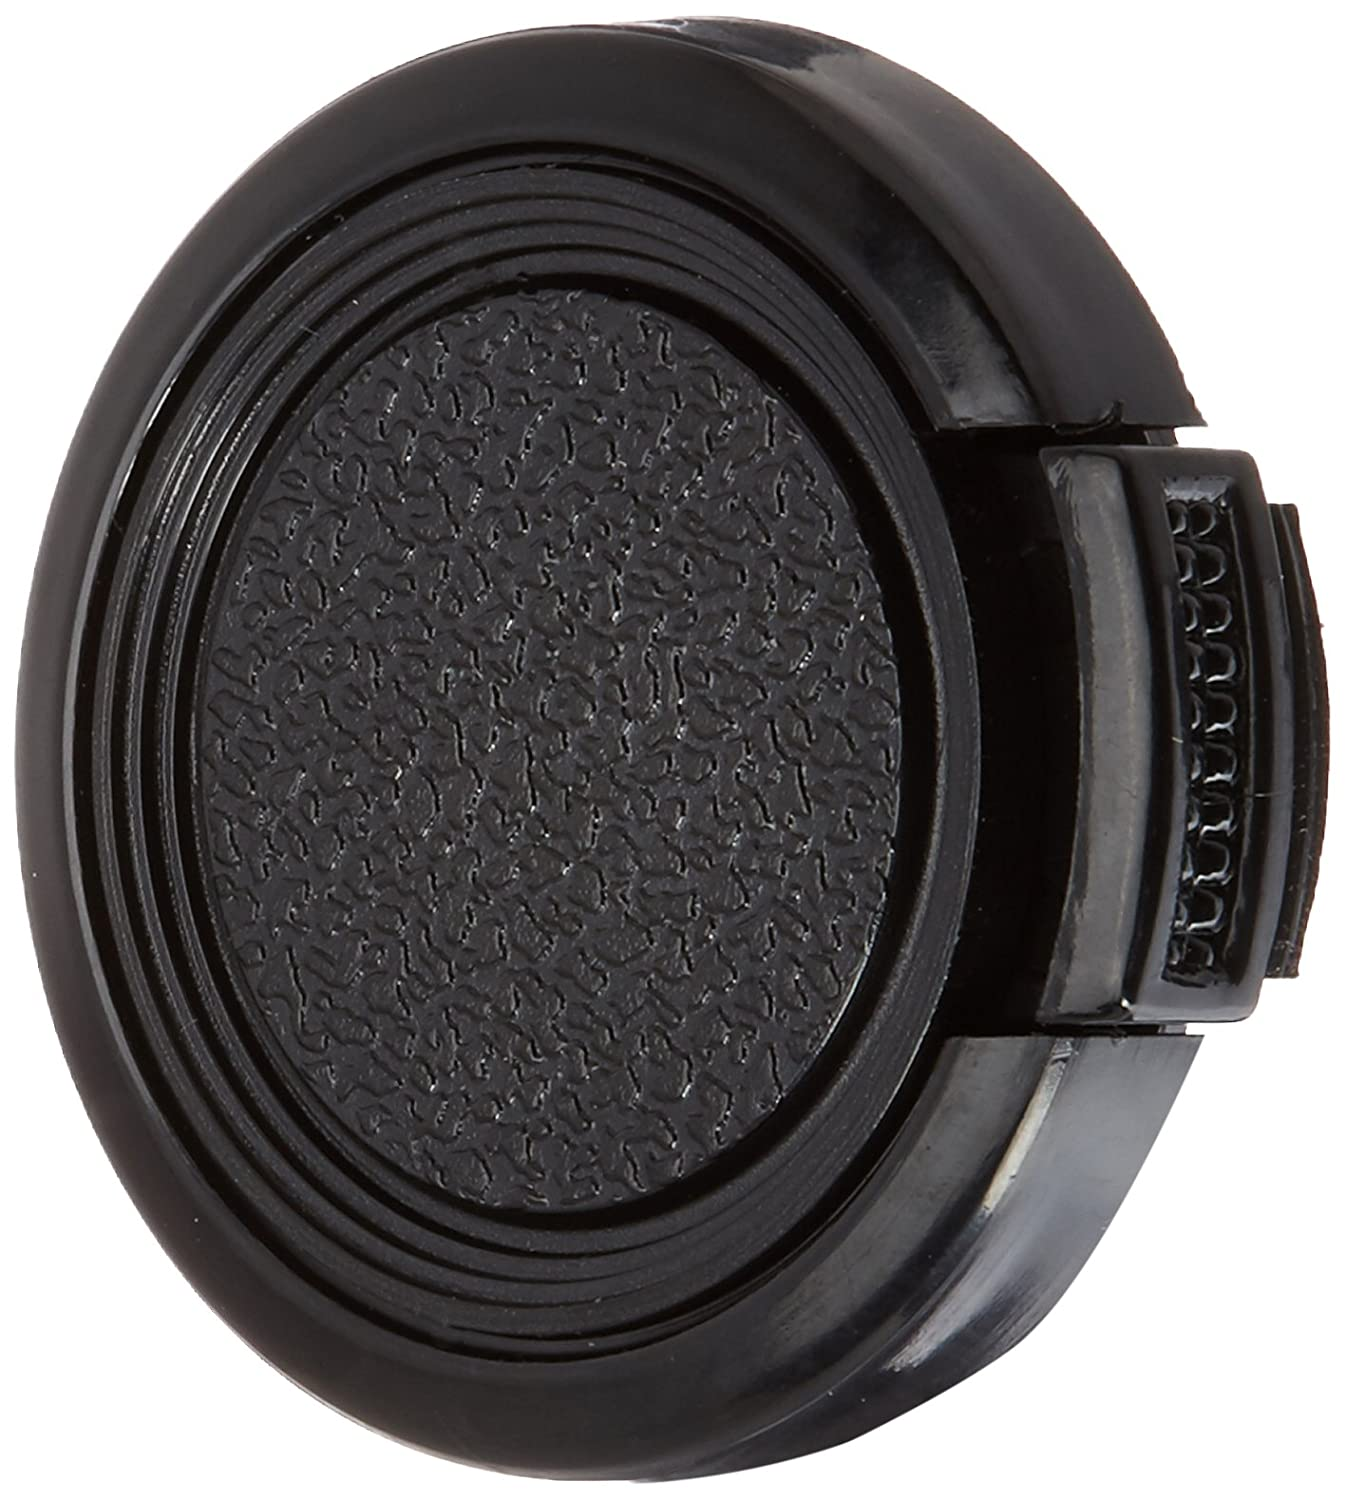 Fotodiox Snap-on Lens Cap, Lens Cover 43mm 05CAP43x1